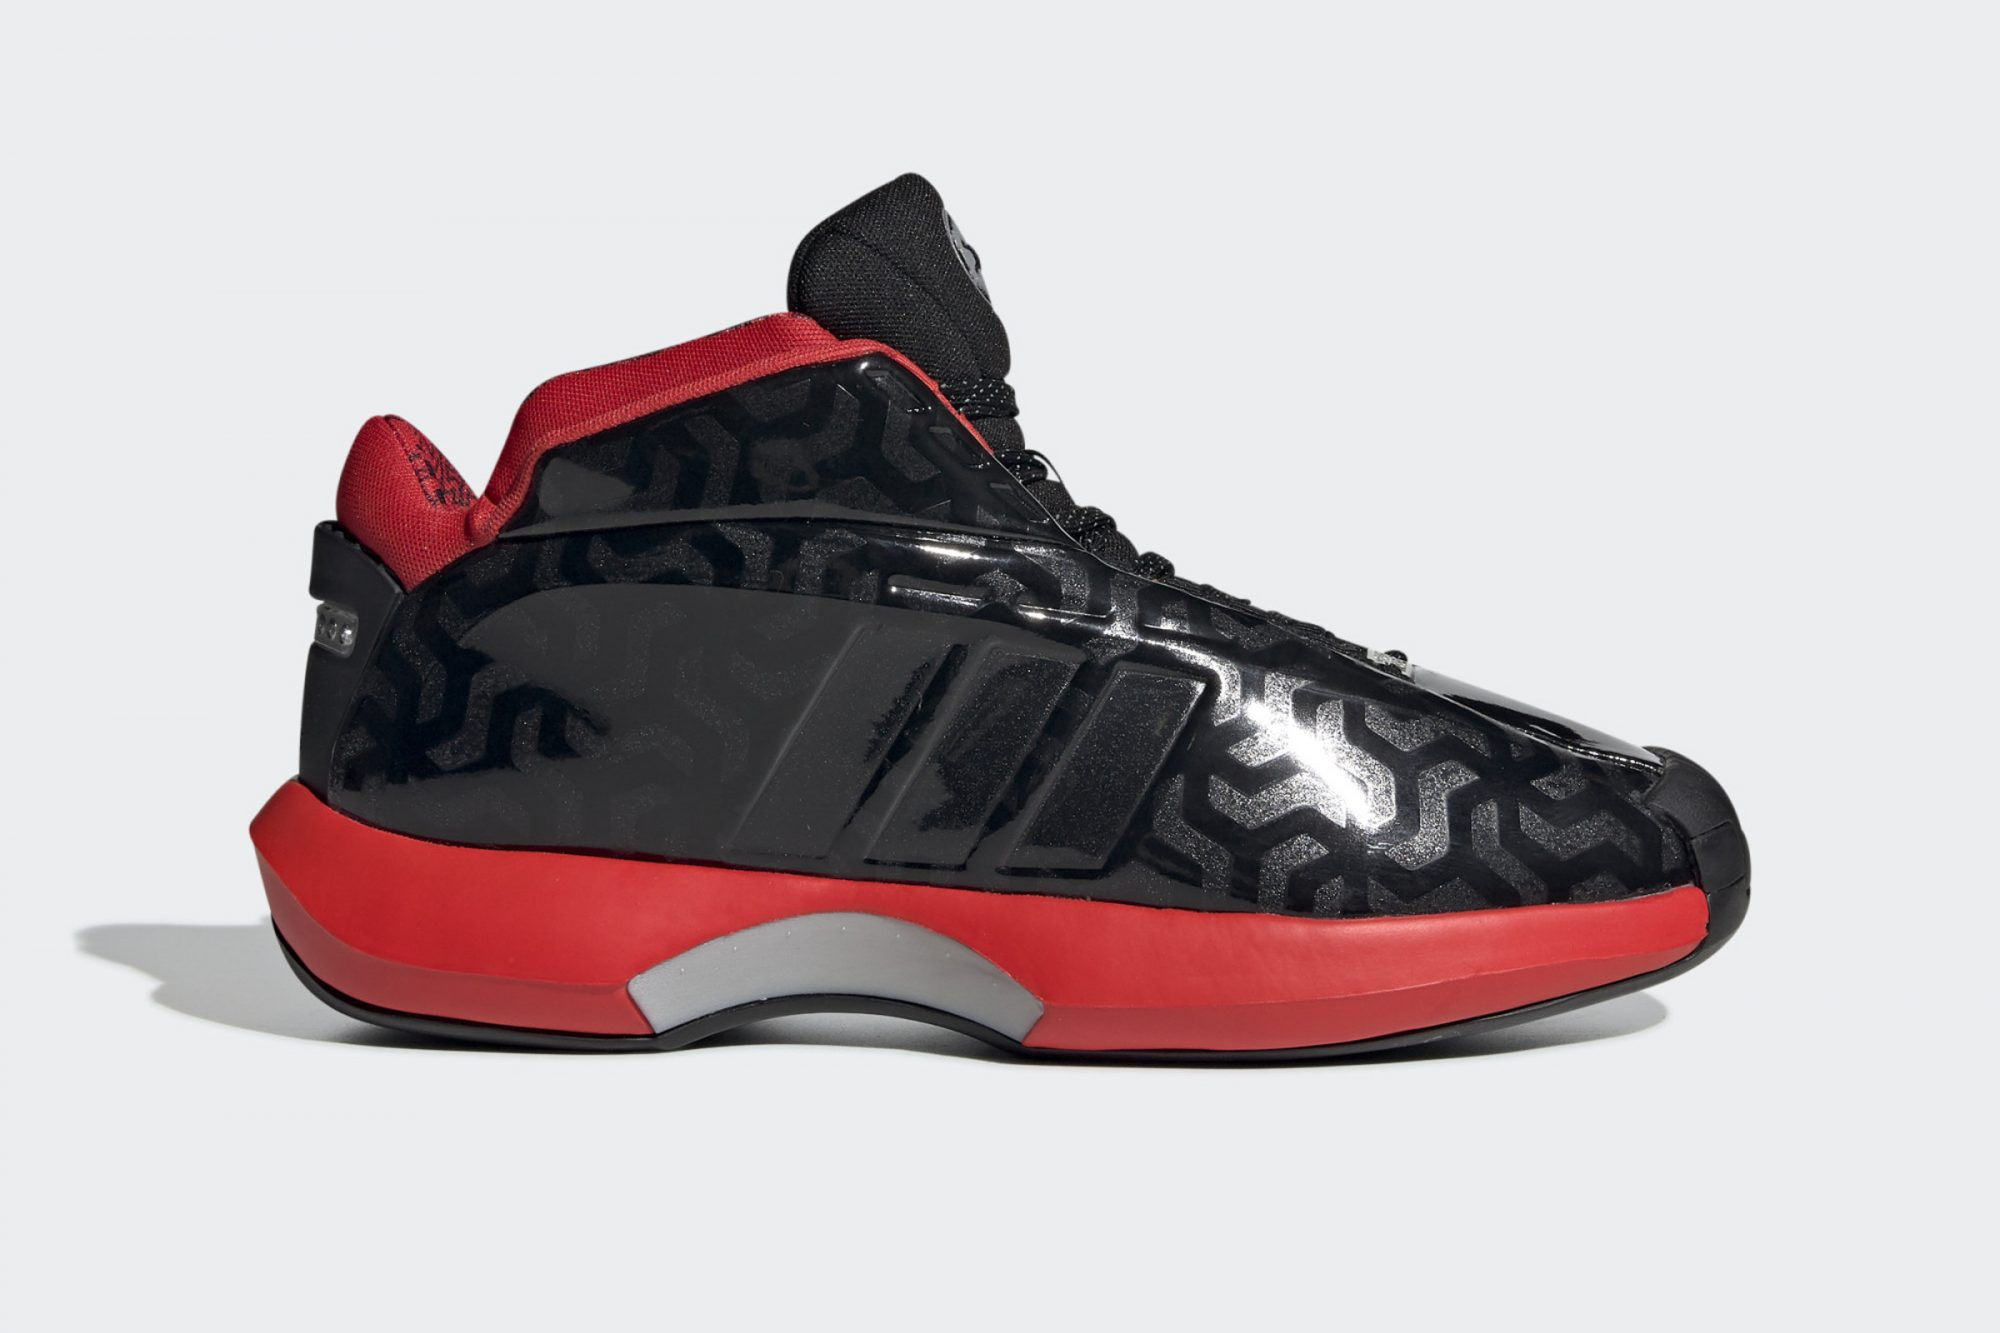 adidas Crazy 1 Star Wars Darth Vader Shoes from the Adidas Star Wars Sneaker Collection